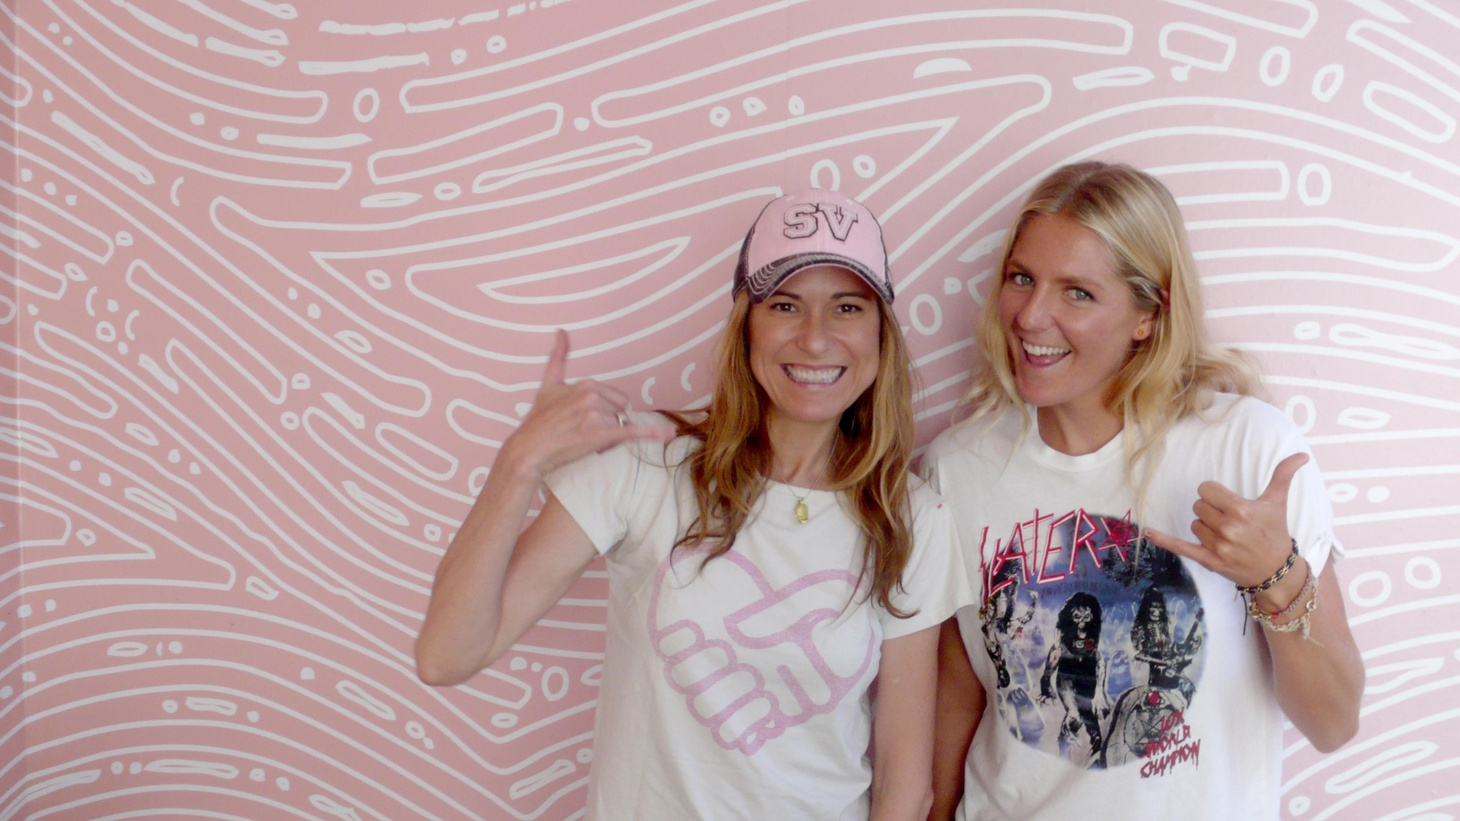 Professional surfer Stephanie Gilmore is a four-time world champion and, for her Guest DJ set, she selected songs that bring back memories of her travels and  favorite surfing trips, including fellow Australians Tame Impala, all-girl punk band the Slits and more.